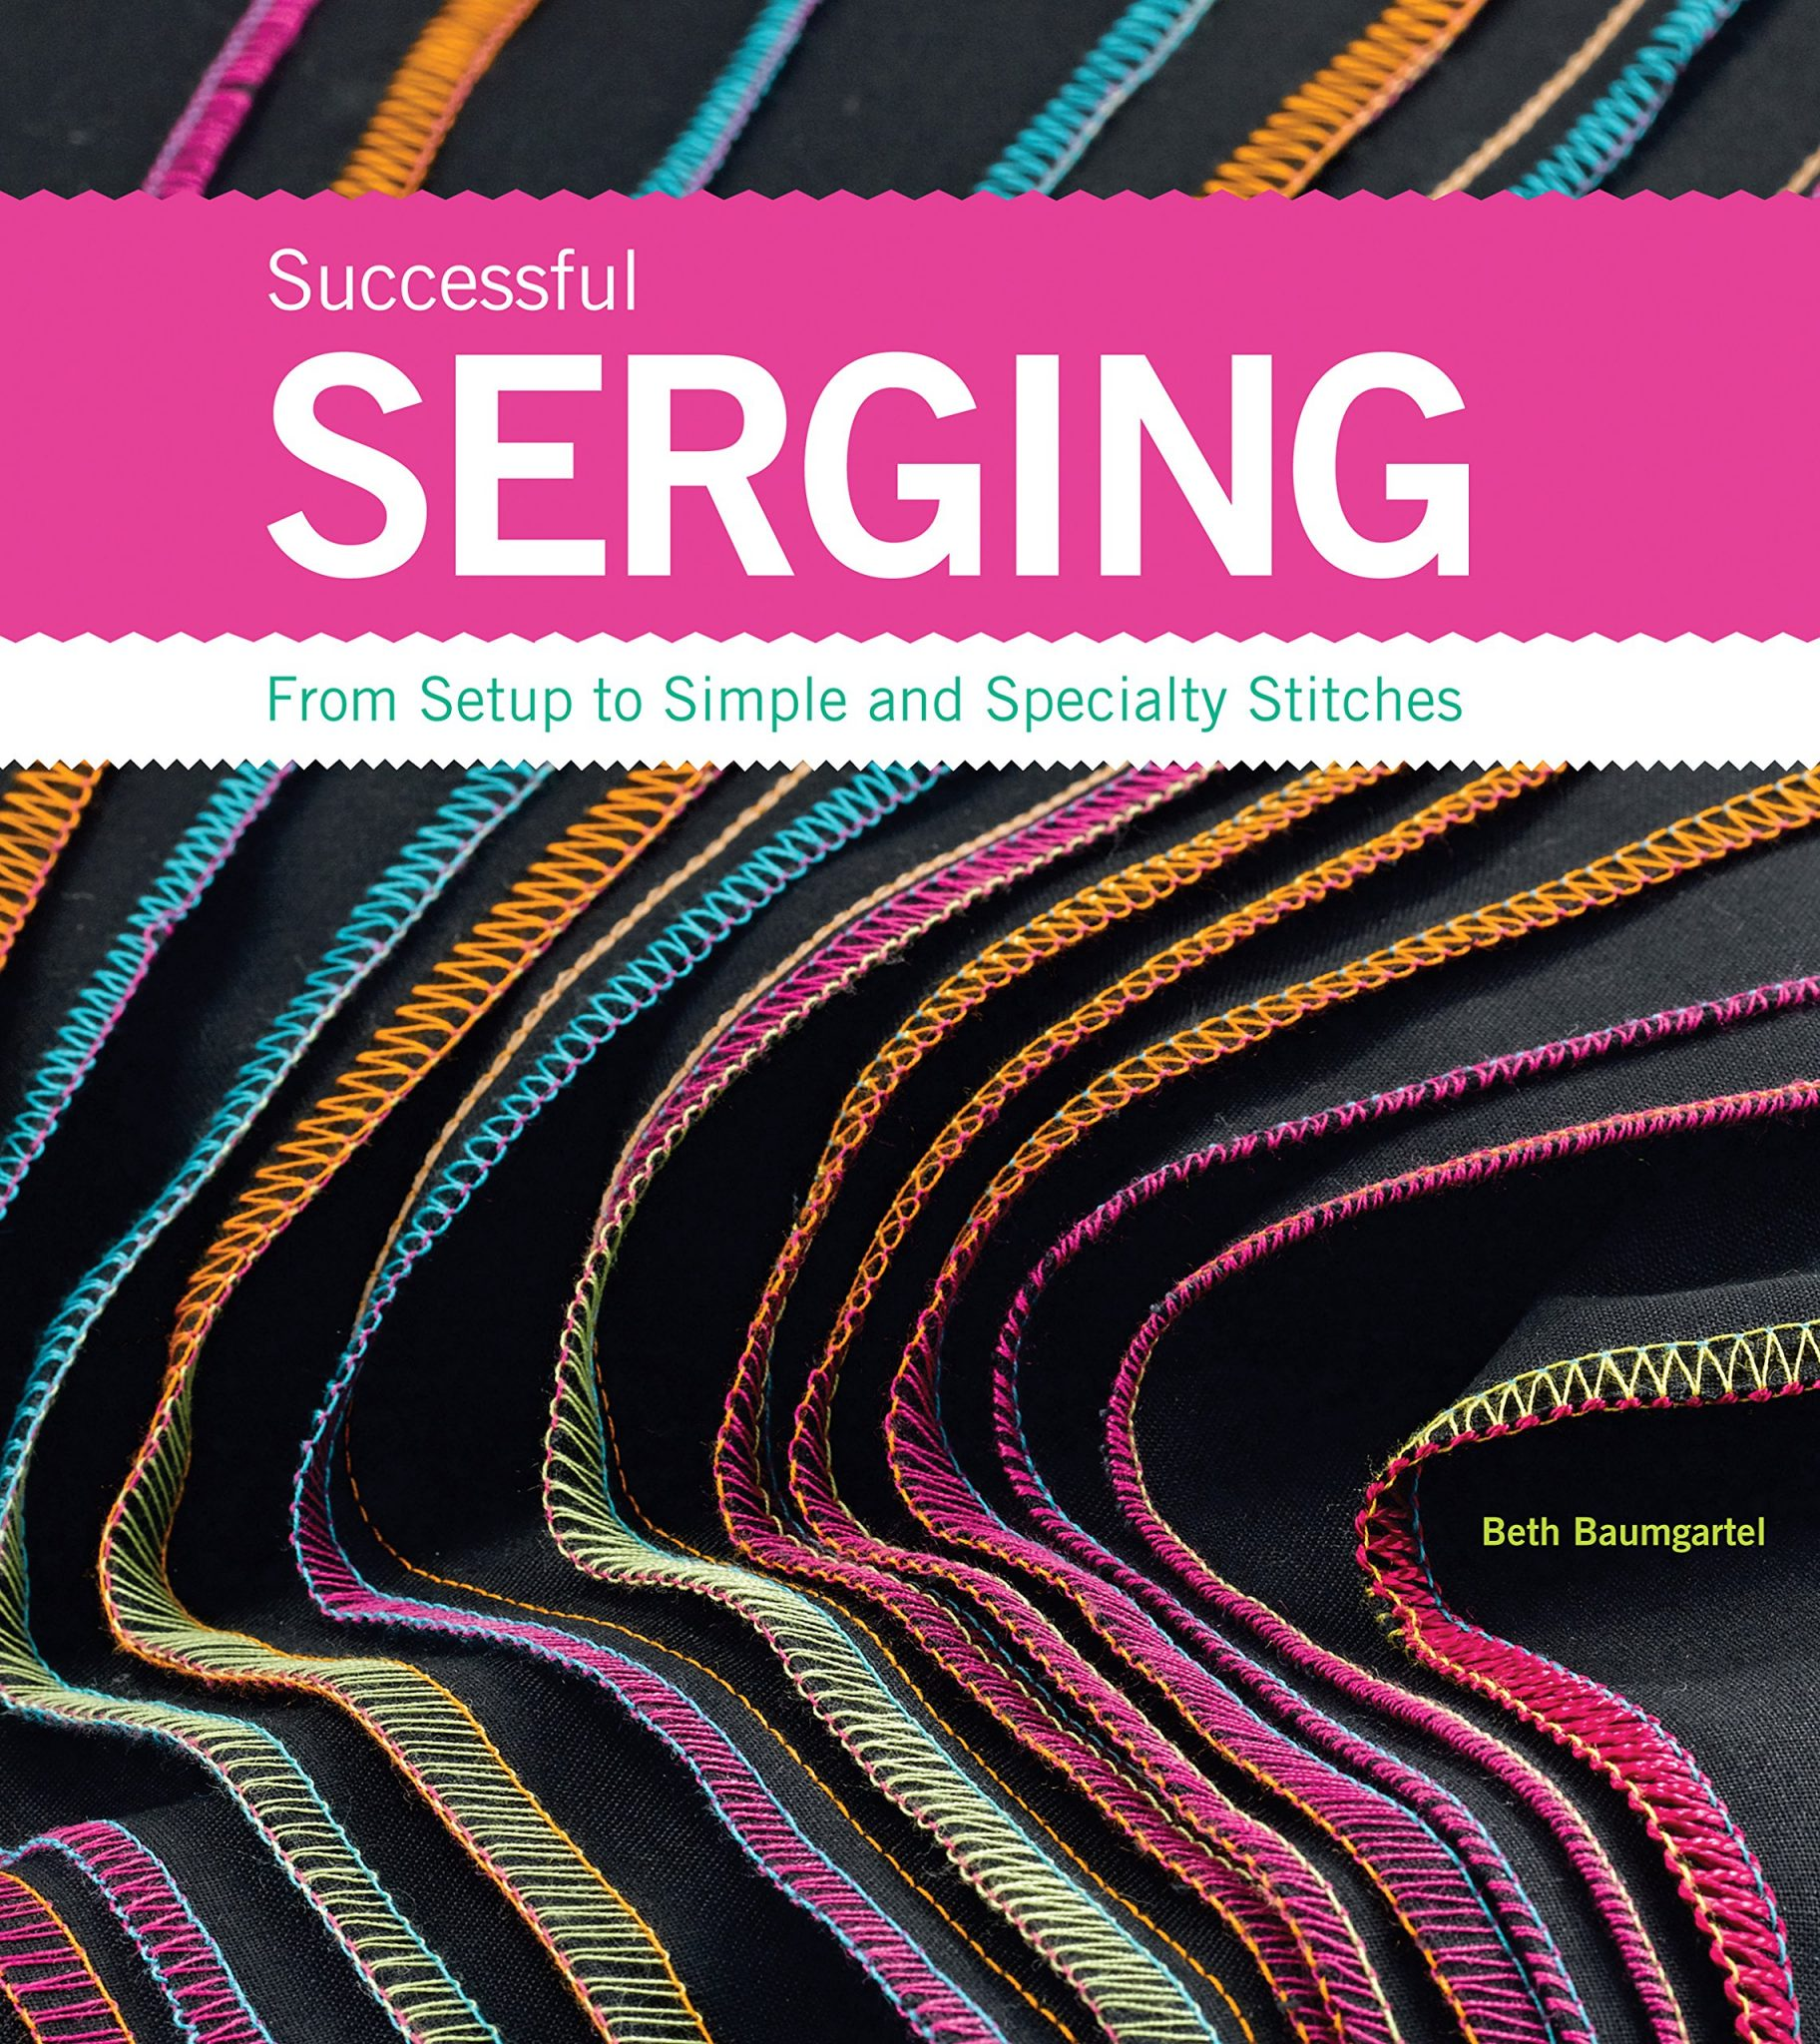 Successful Serging: From Setup to Simple and Specialty Stitches